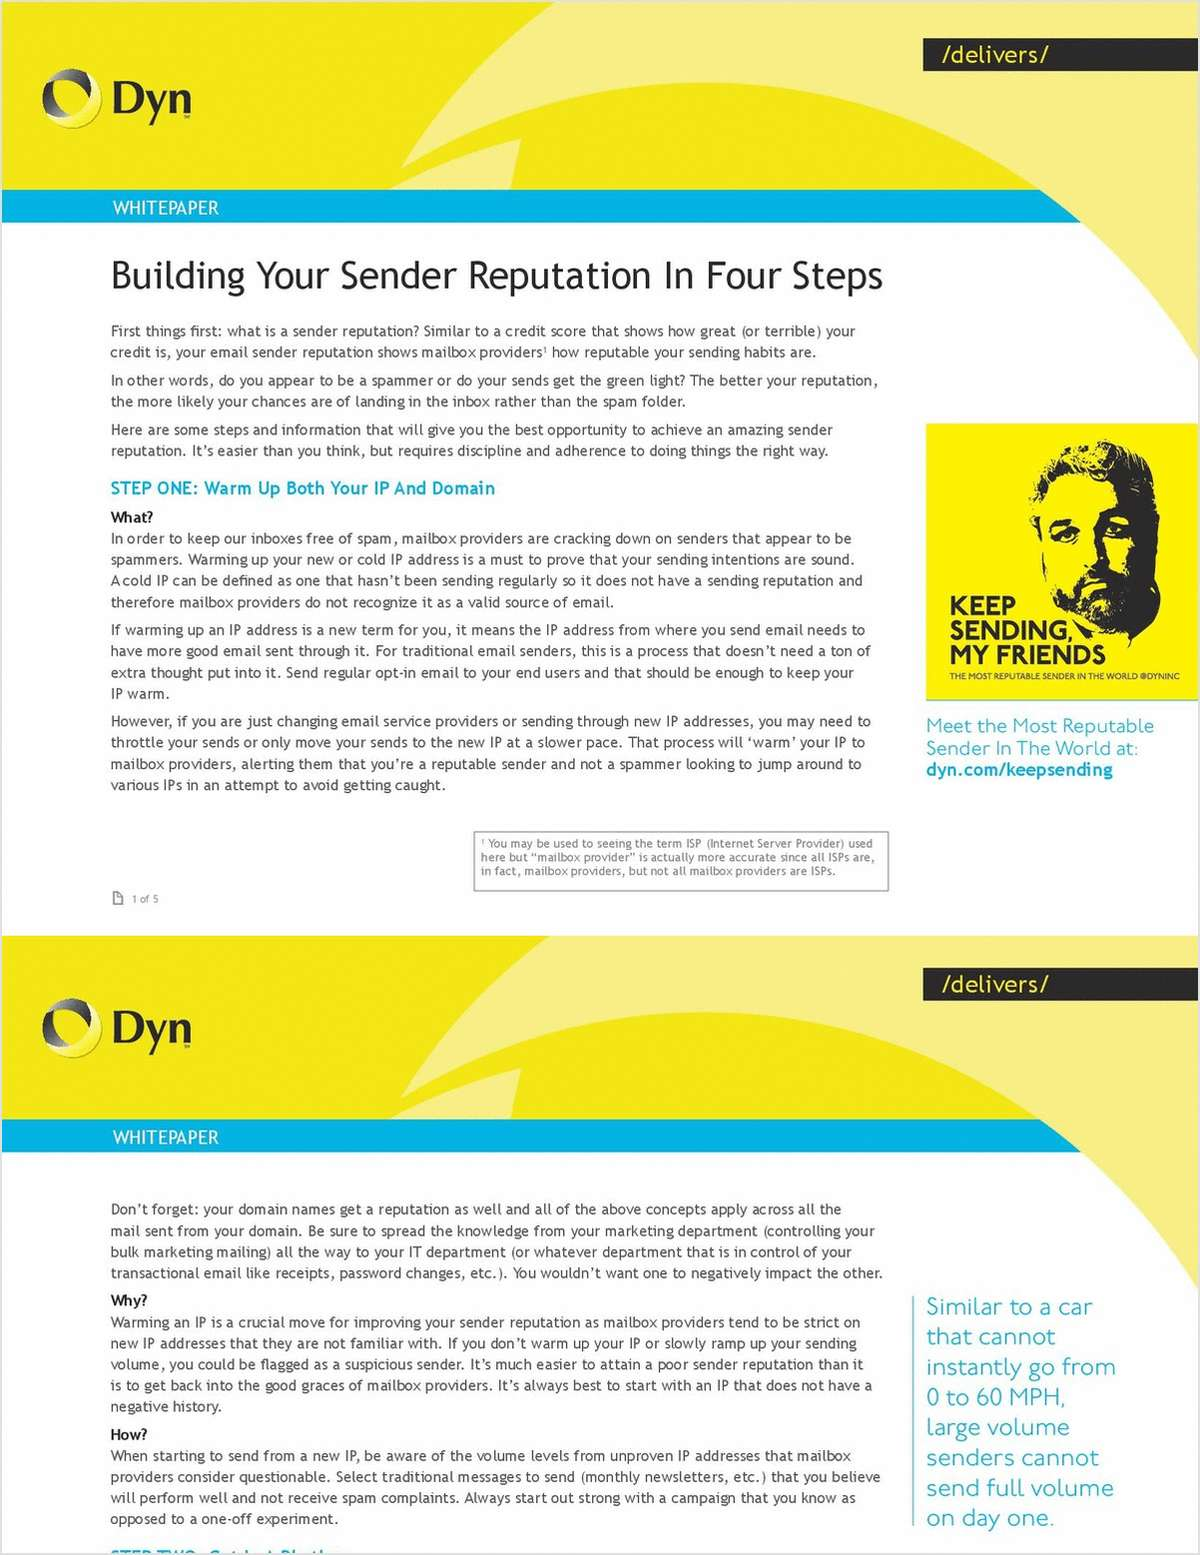 Build your Sender Reputation in Four Steps